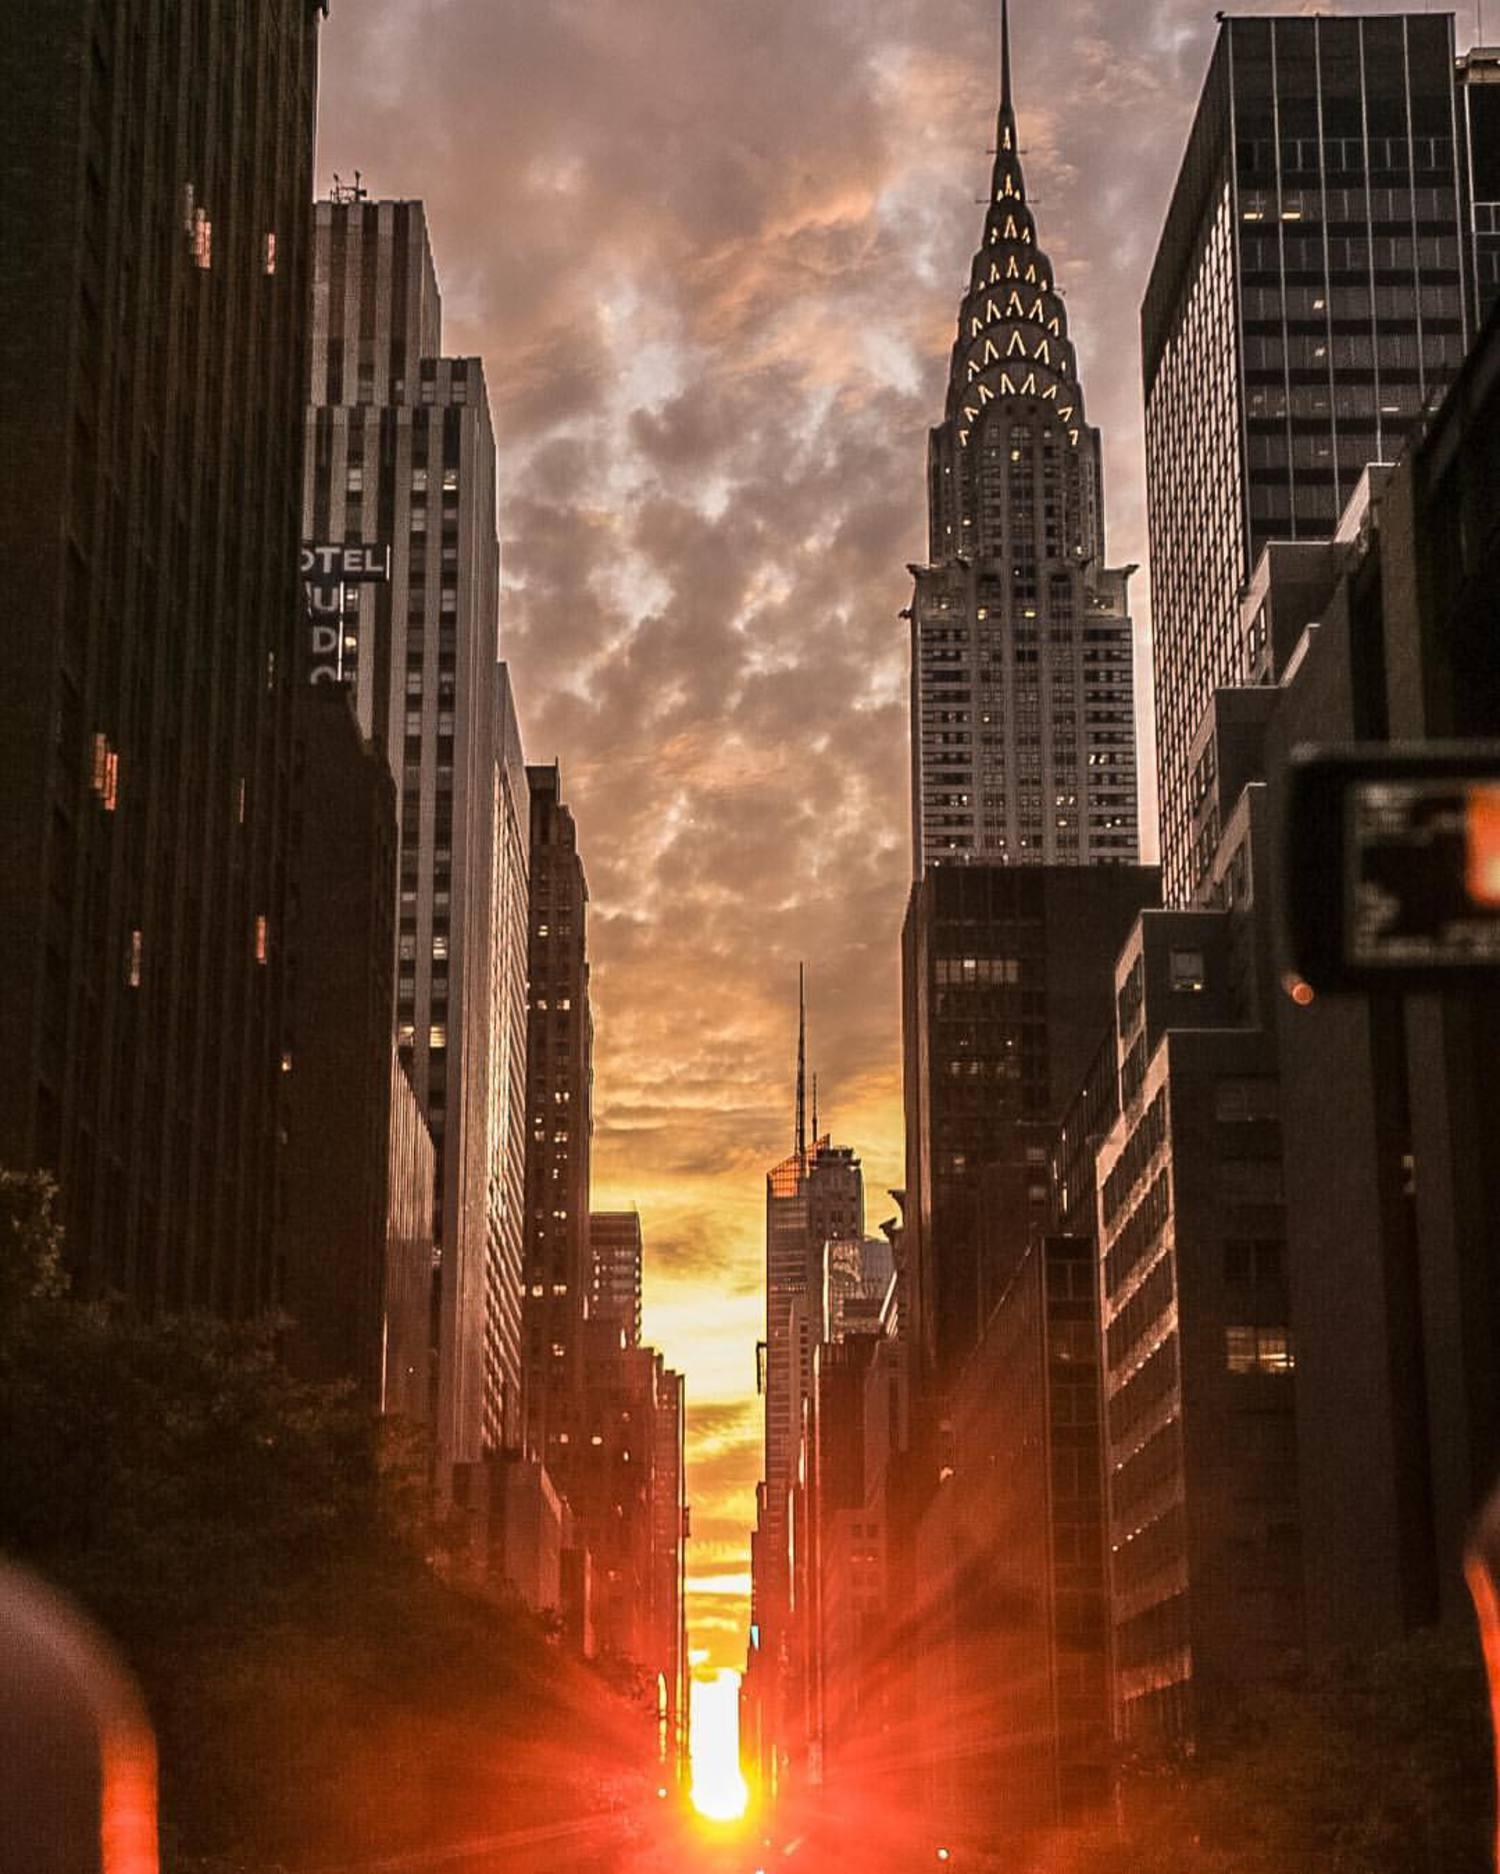 More #Manhattanhenge #Manhattanhenge2016 #LoveNYC #SeeYourCity